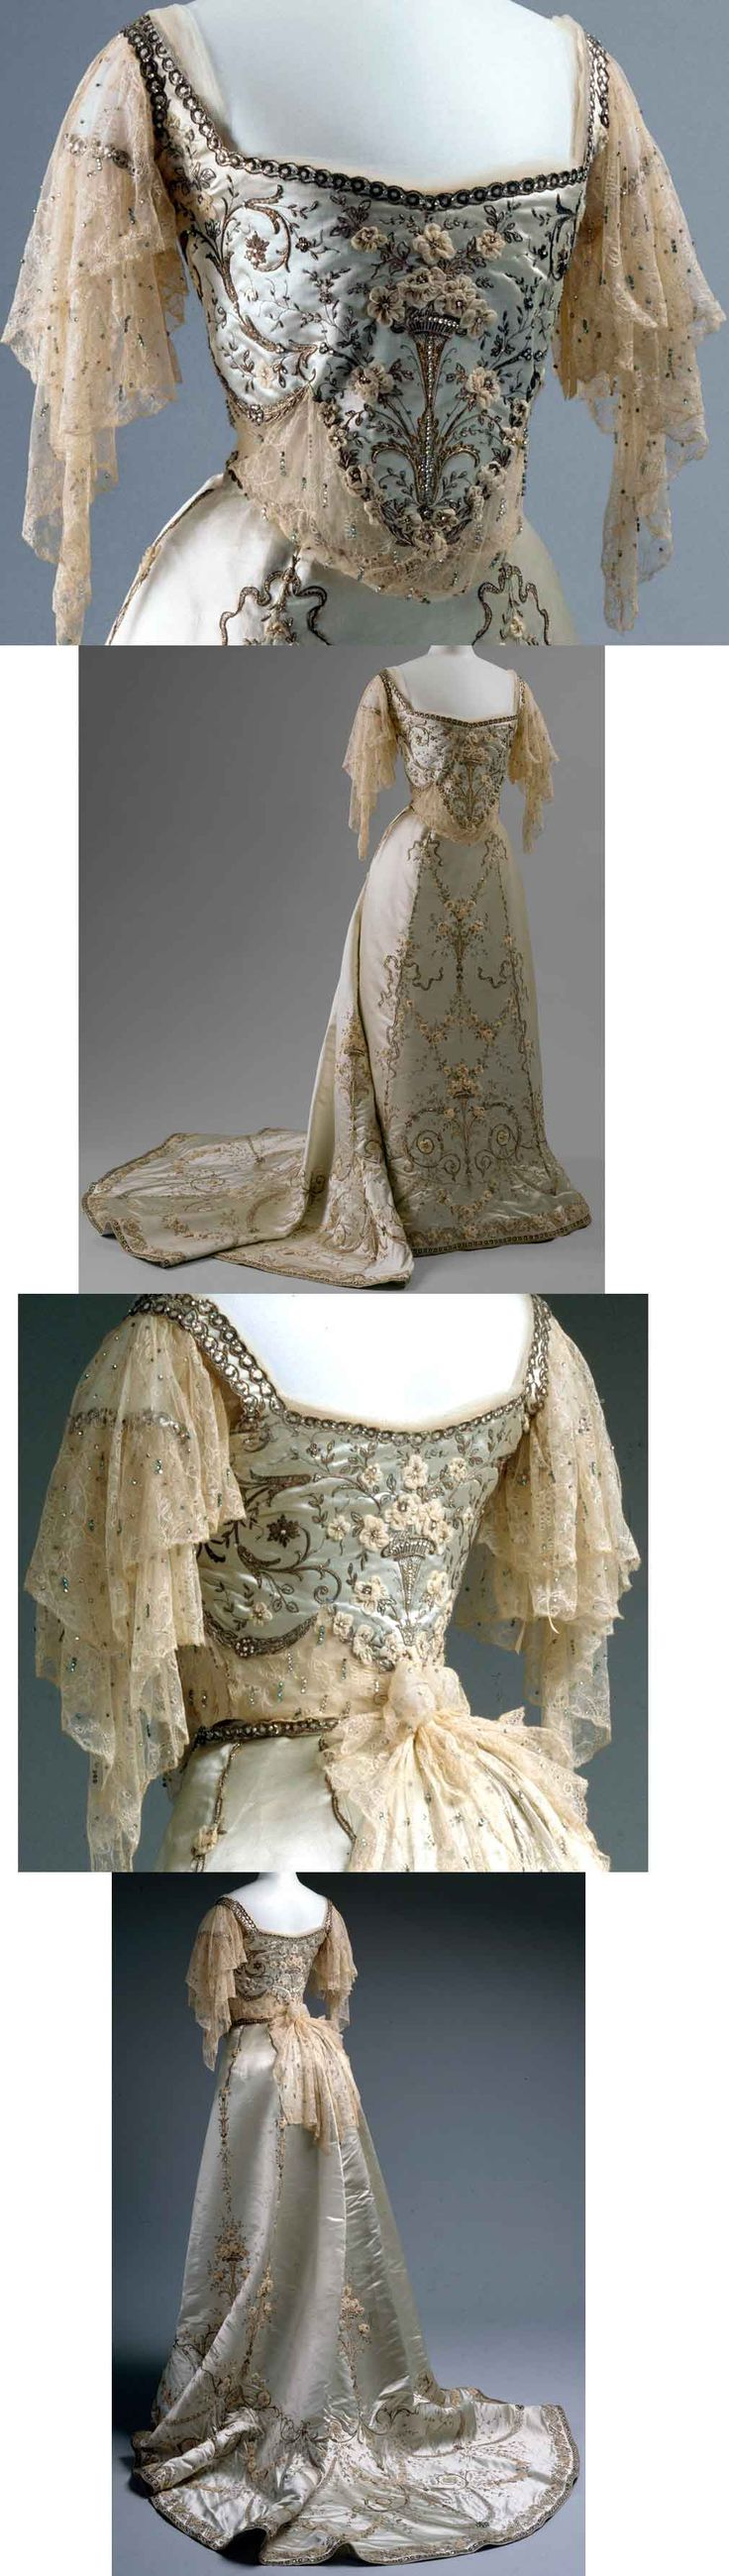 A knockout! Worth ballgown, 1900-1905. Silk and cotton with metallic thread, glass, and metal ornamentation. #worth #ballgown #eveninggown #edwardian #vintagefashion